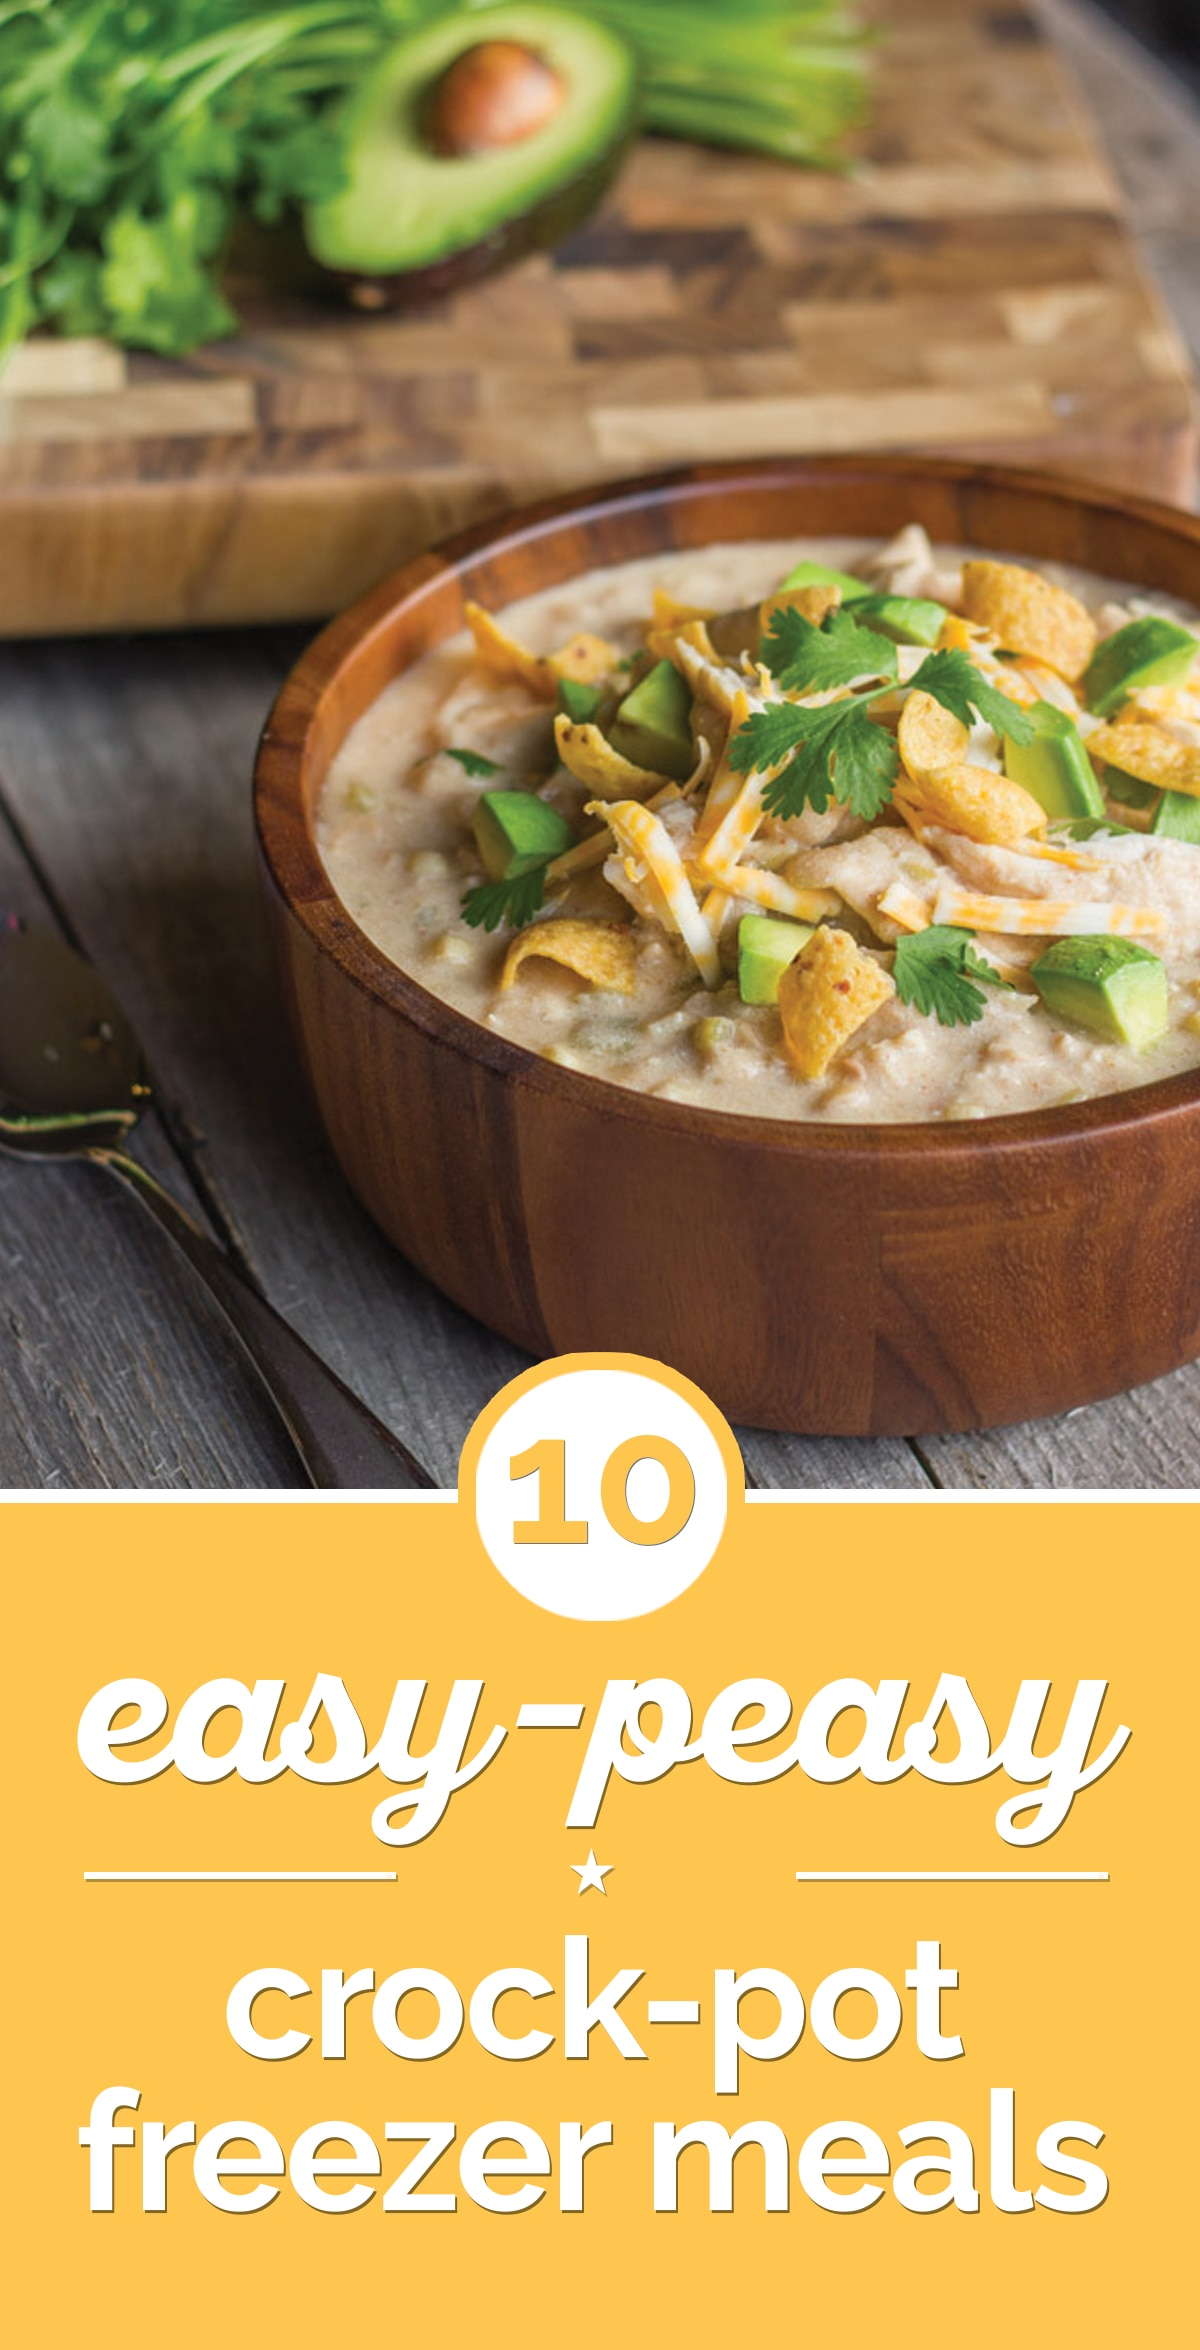 10 Easy-Peasy Crock-Pot Freezer Meals | the good stuff